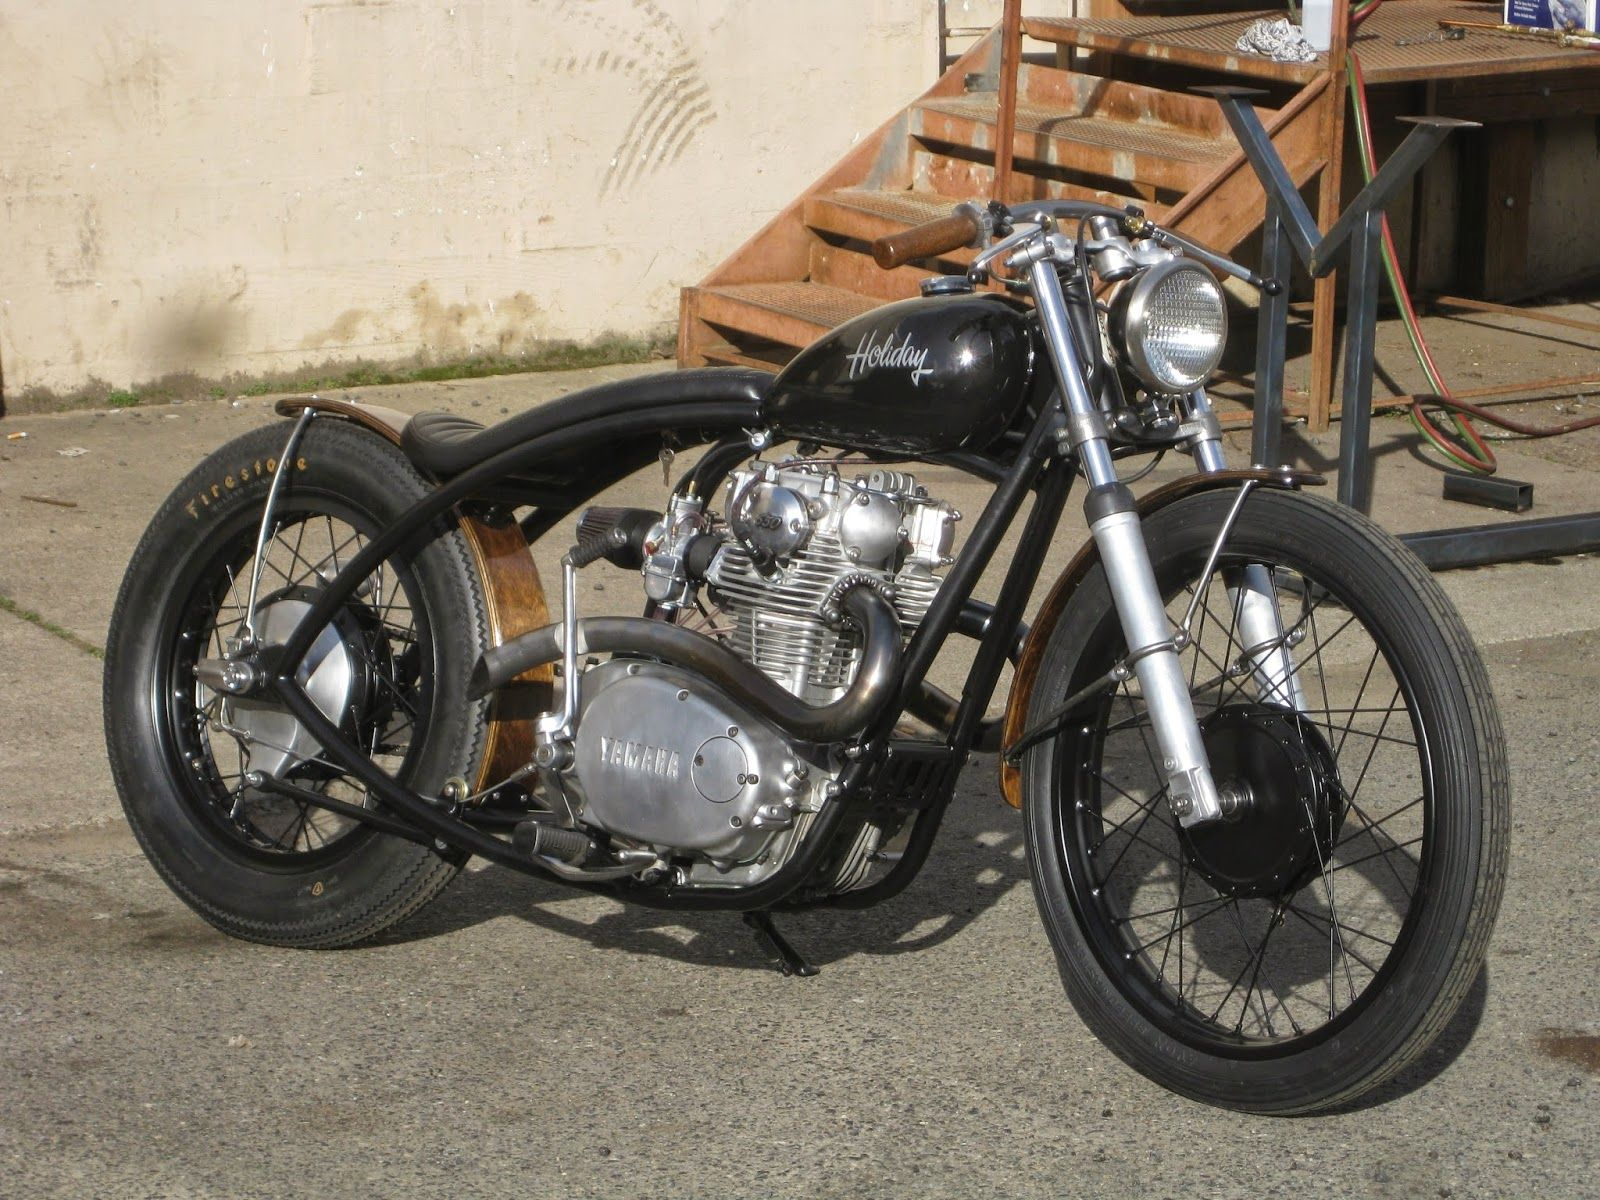 Idea by Jens Enstedt on Bikes Xs650, Classic motorcycles